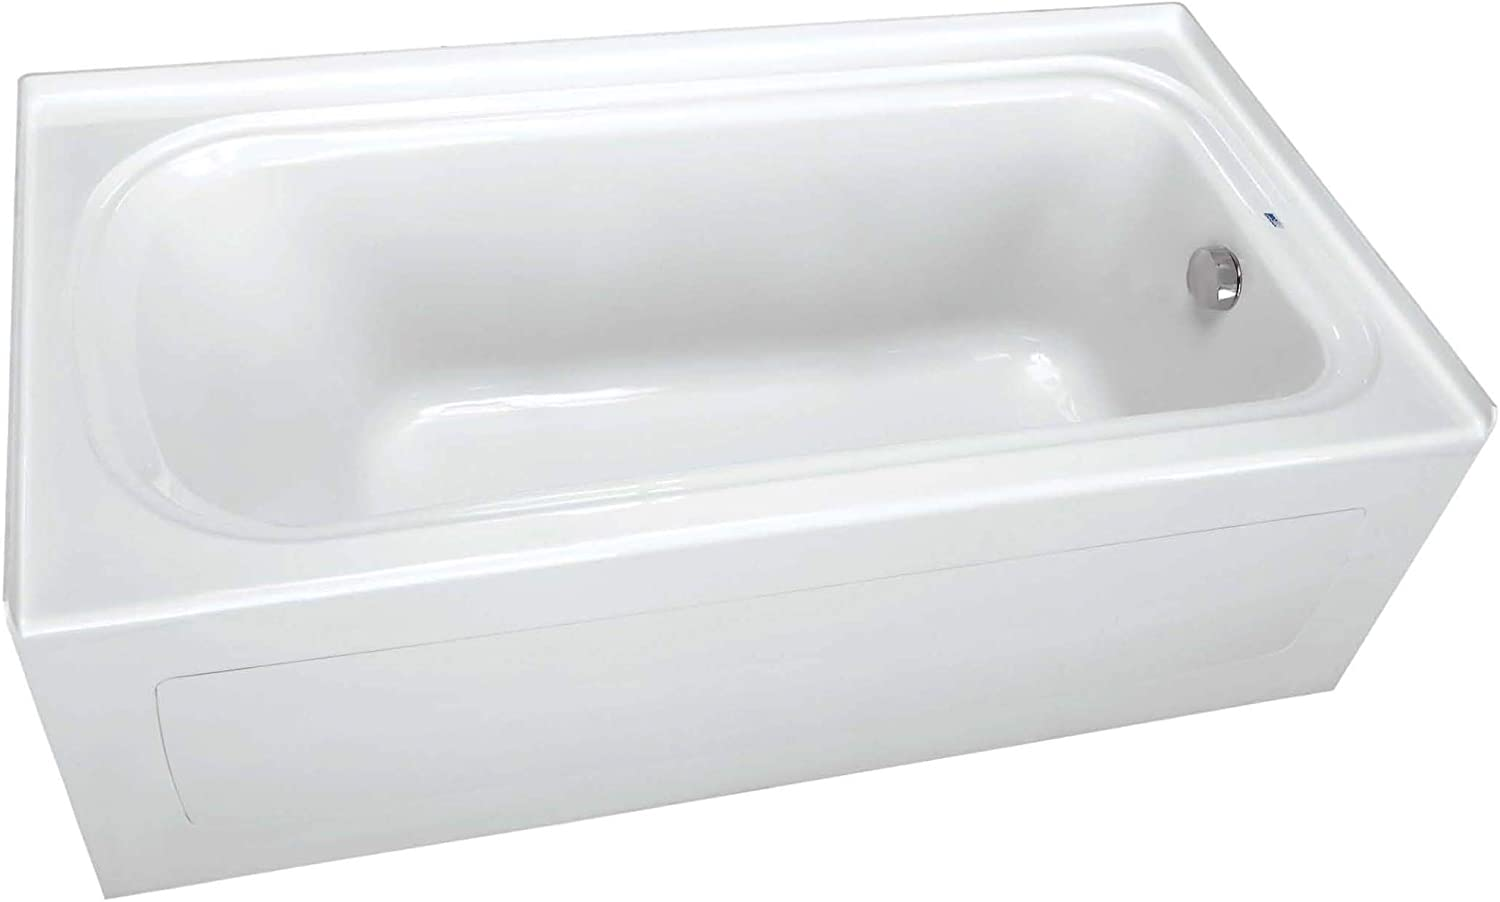 """PROFLO PFS7236RSKWH PROFLO PFS7236RSK 72"""" x 36"""" Alcove Soaking Bath Tub with Skirt and Right Hand Dr"""